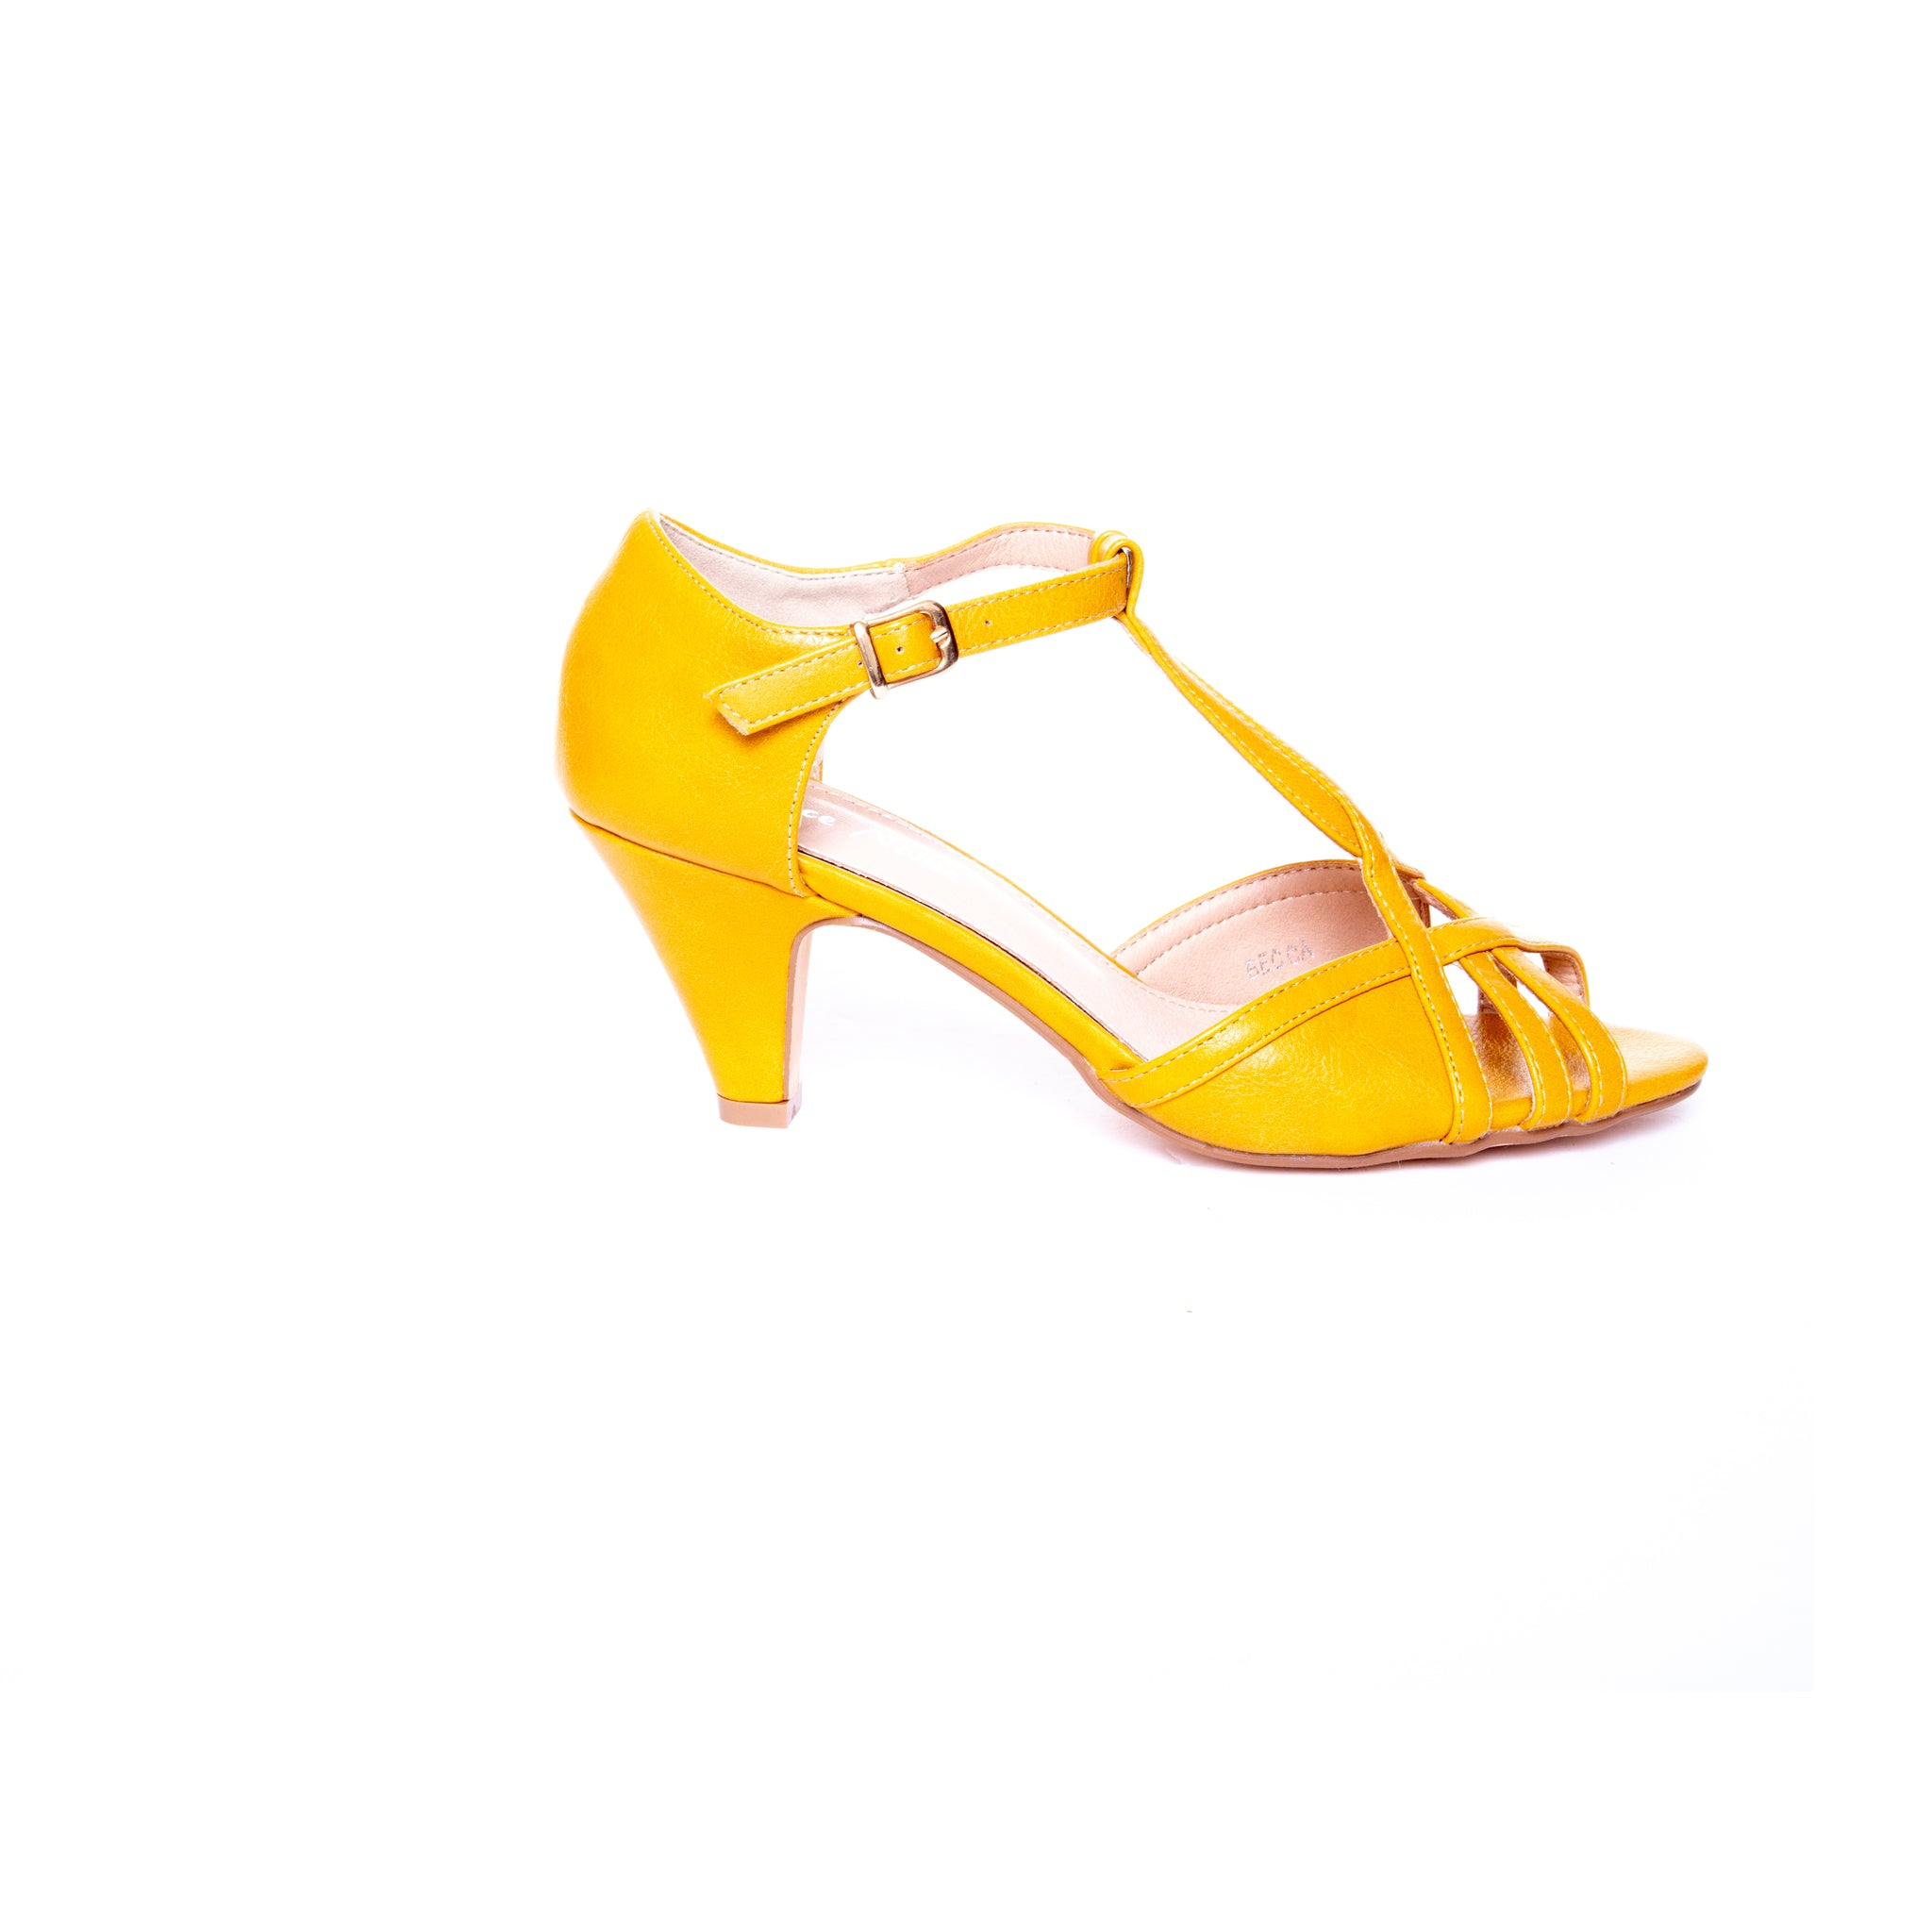 Becca by Dolce Nome | Open Toe Heel Sandals in Mustard (side view)